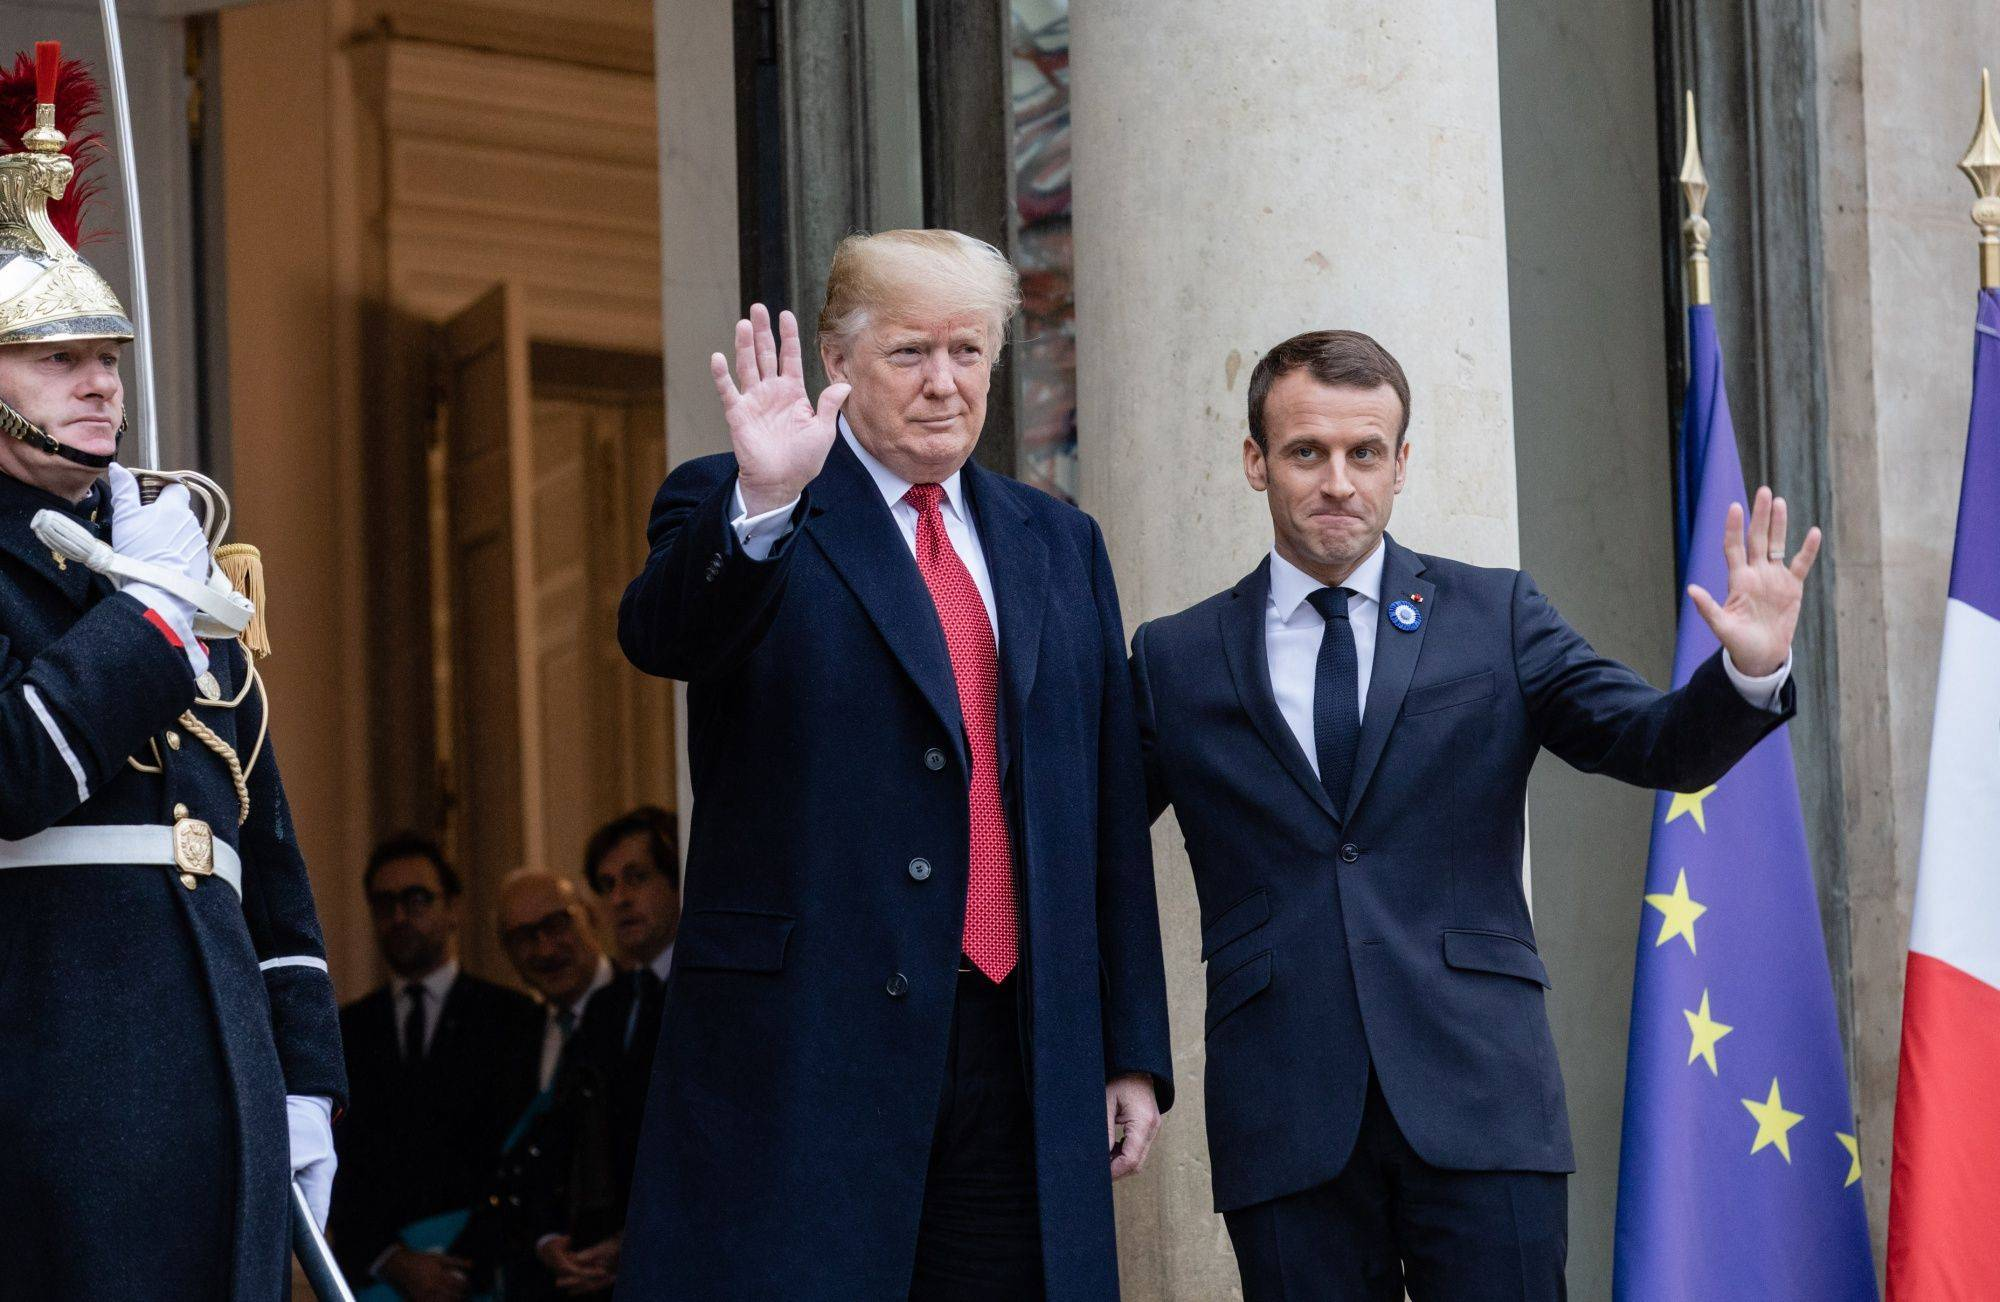 President Trump and French President Emmanuel Macron at the Élysée Palace during World War I commemoration ceremonies in Paris on Nov. 10, 2018. (Marlene Awaad/Bloomberg News)